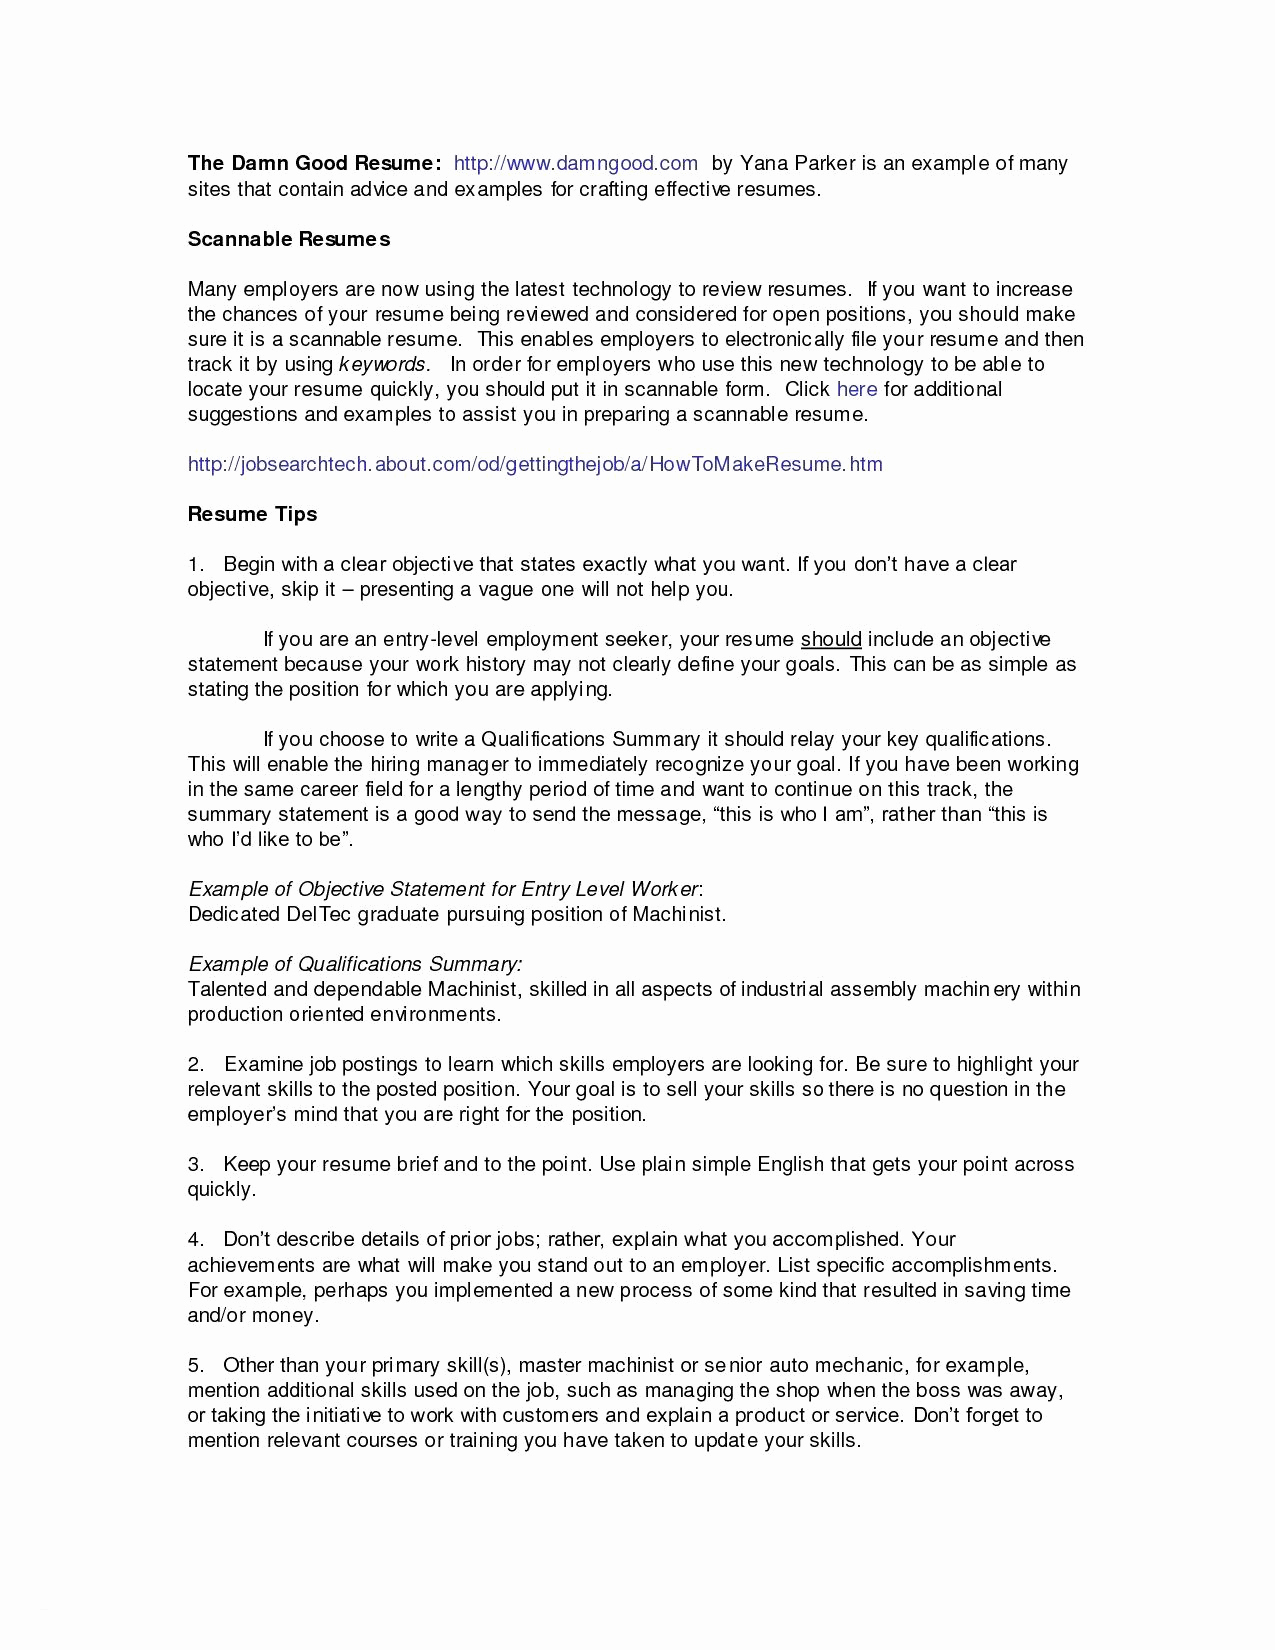 12 mccombs school of business resume template ideas